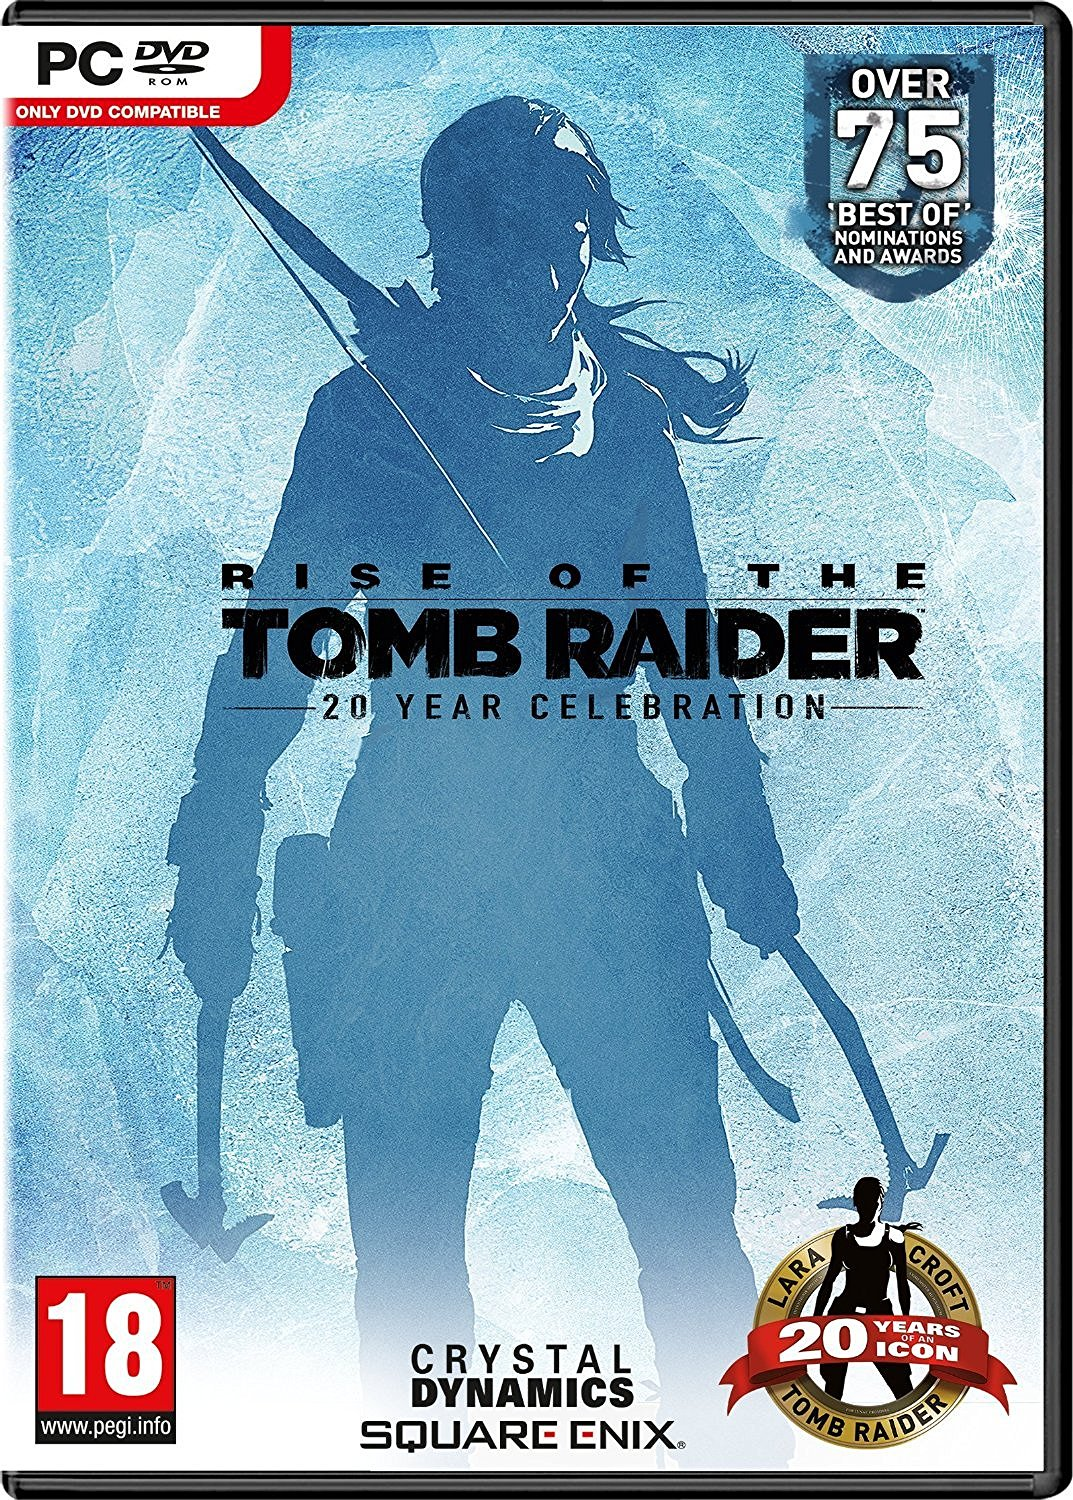 Poster for Rise of the Tomb Raider: 20 Year Celebration